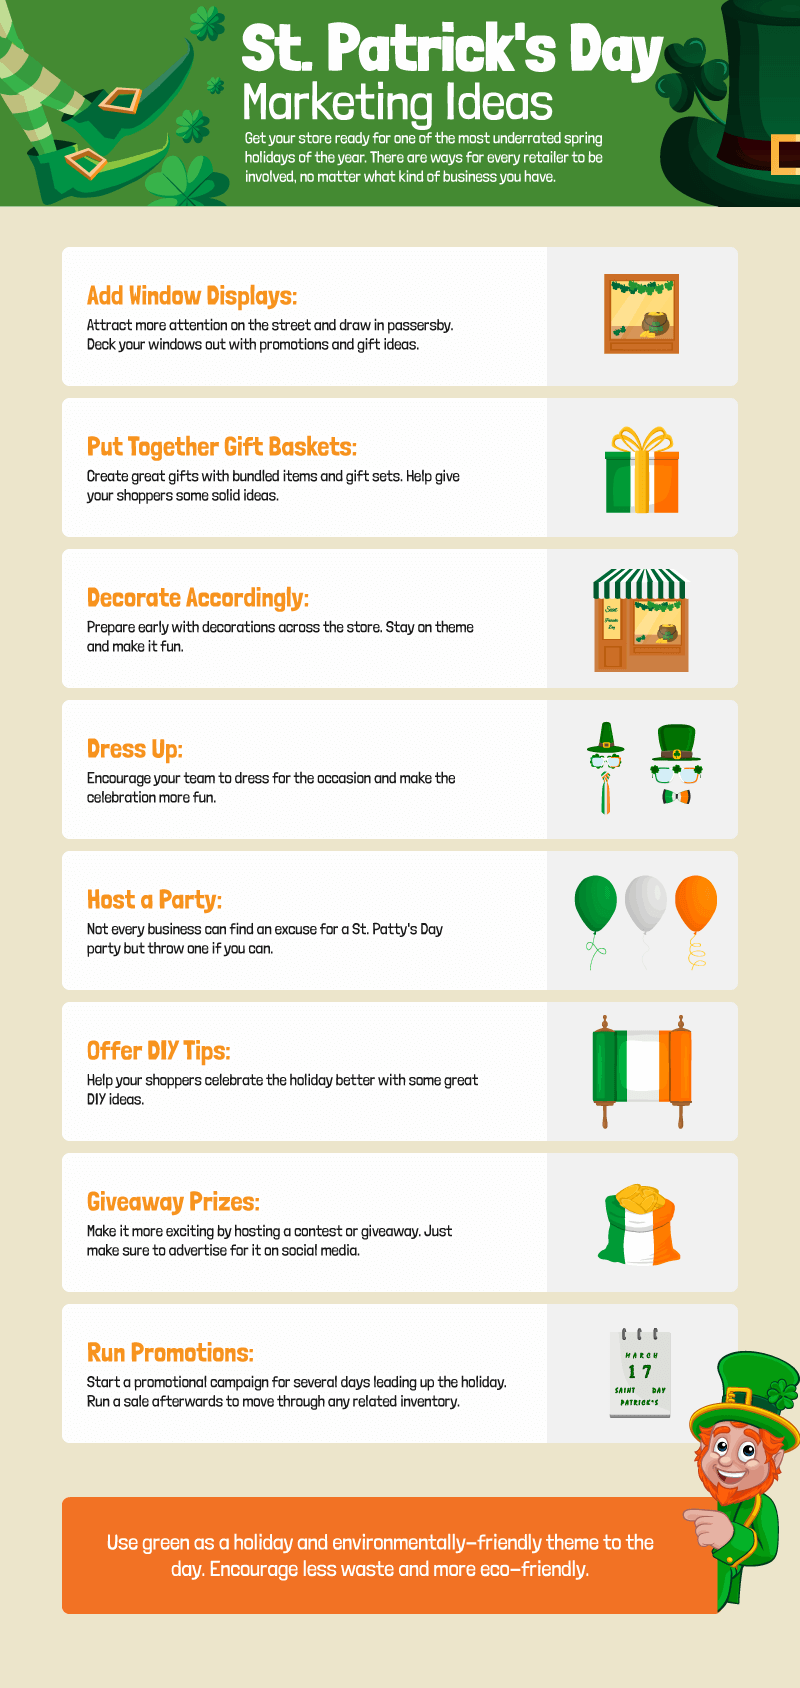 Infographic with 9 marketing ideas for St. Patrick's Day